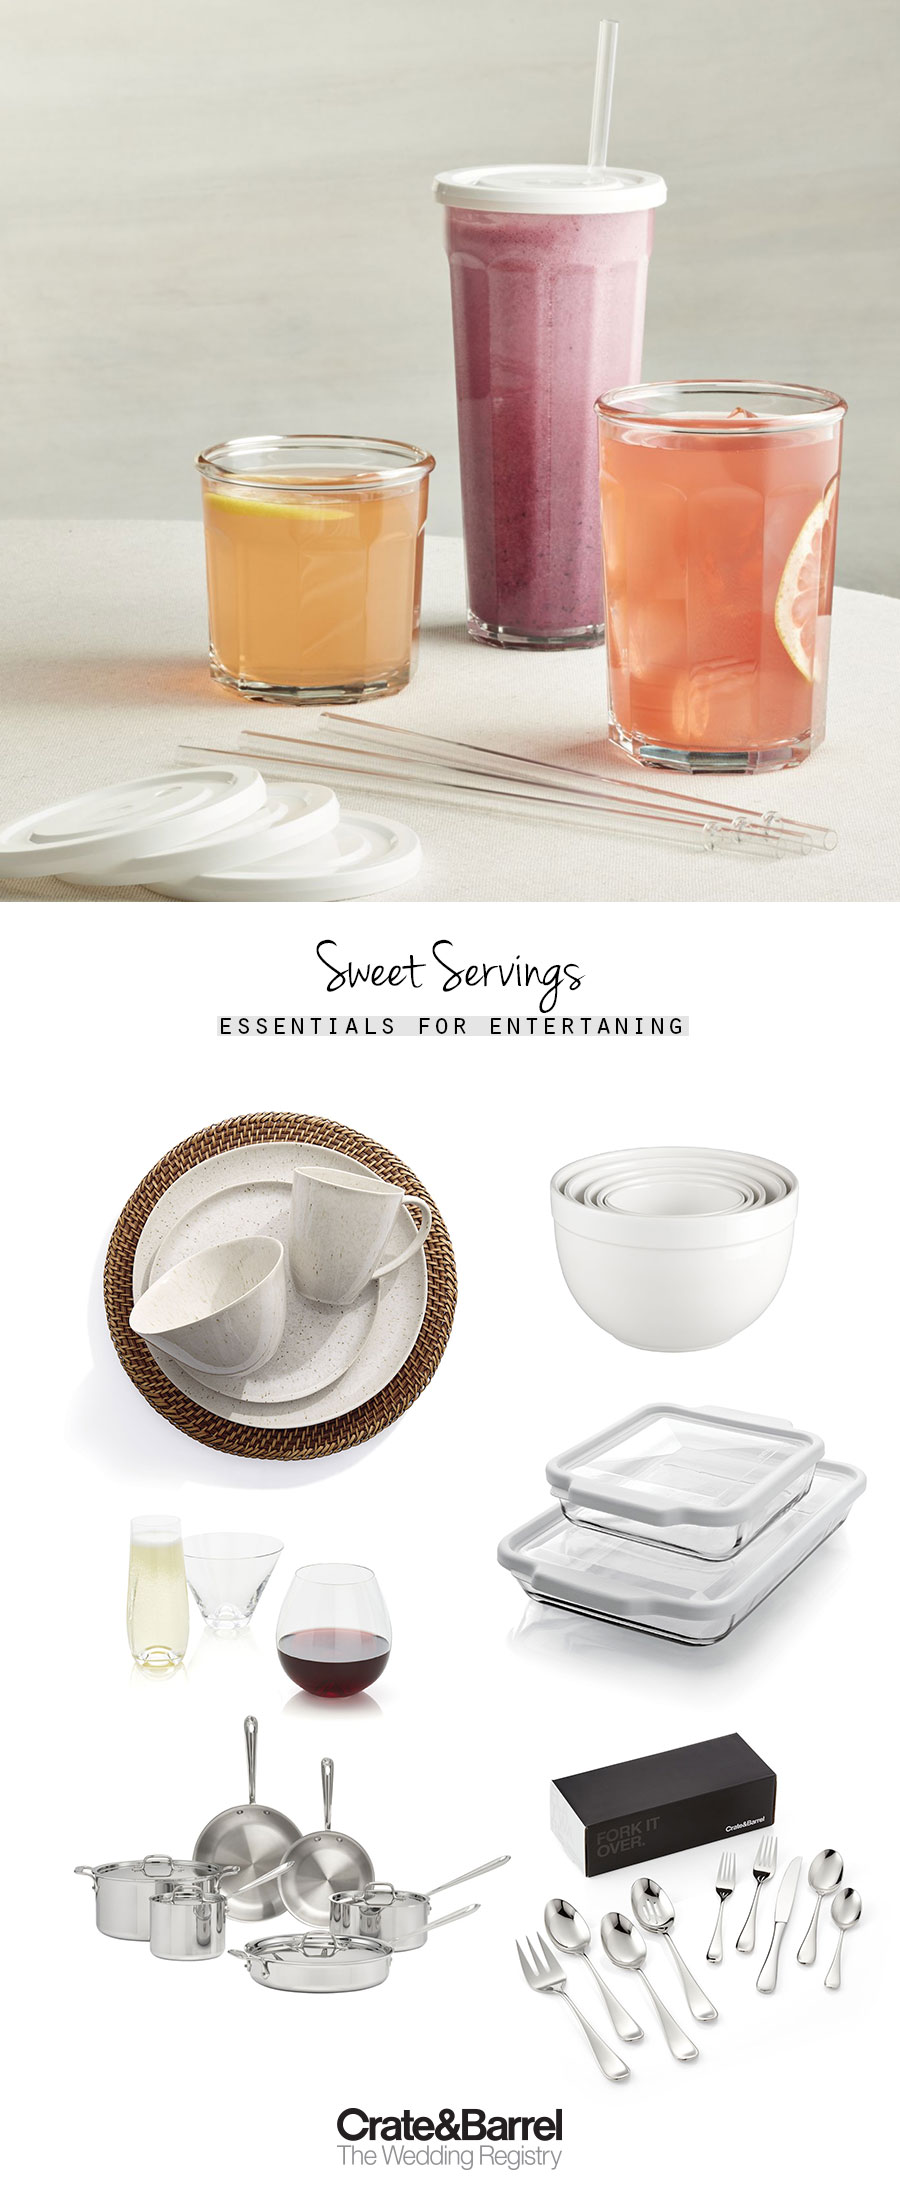 crate and barrel the wedding registry essentials for entertaining